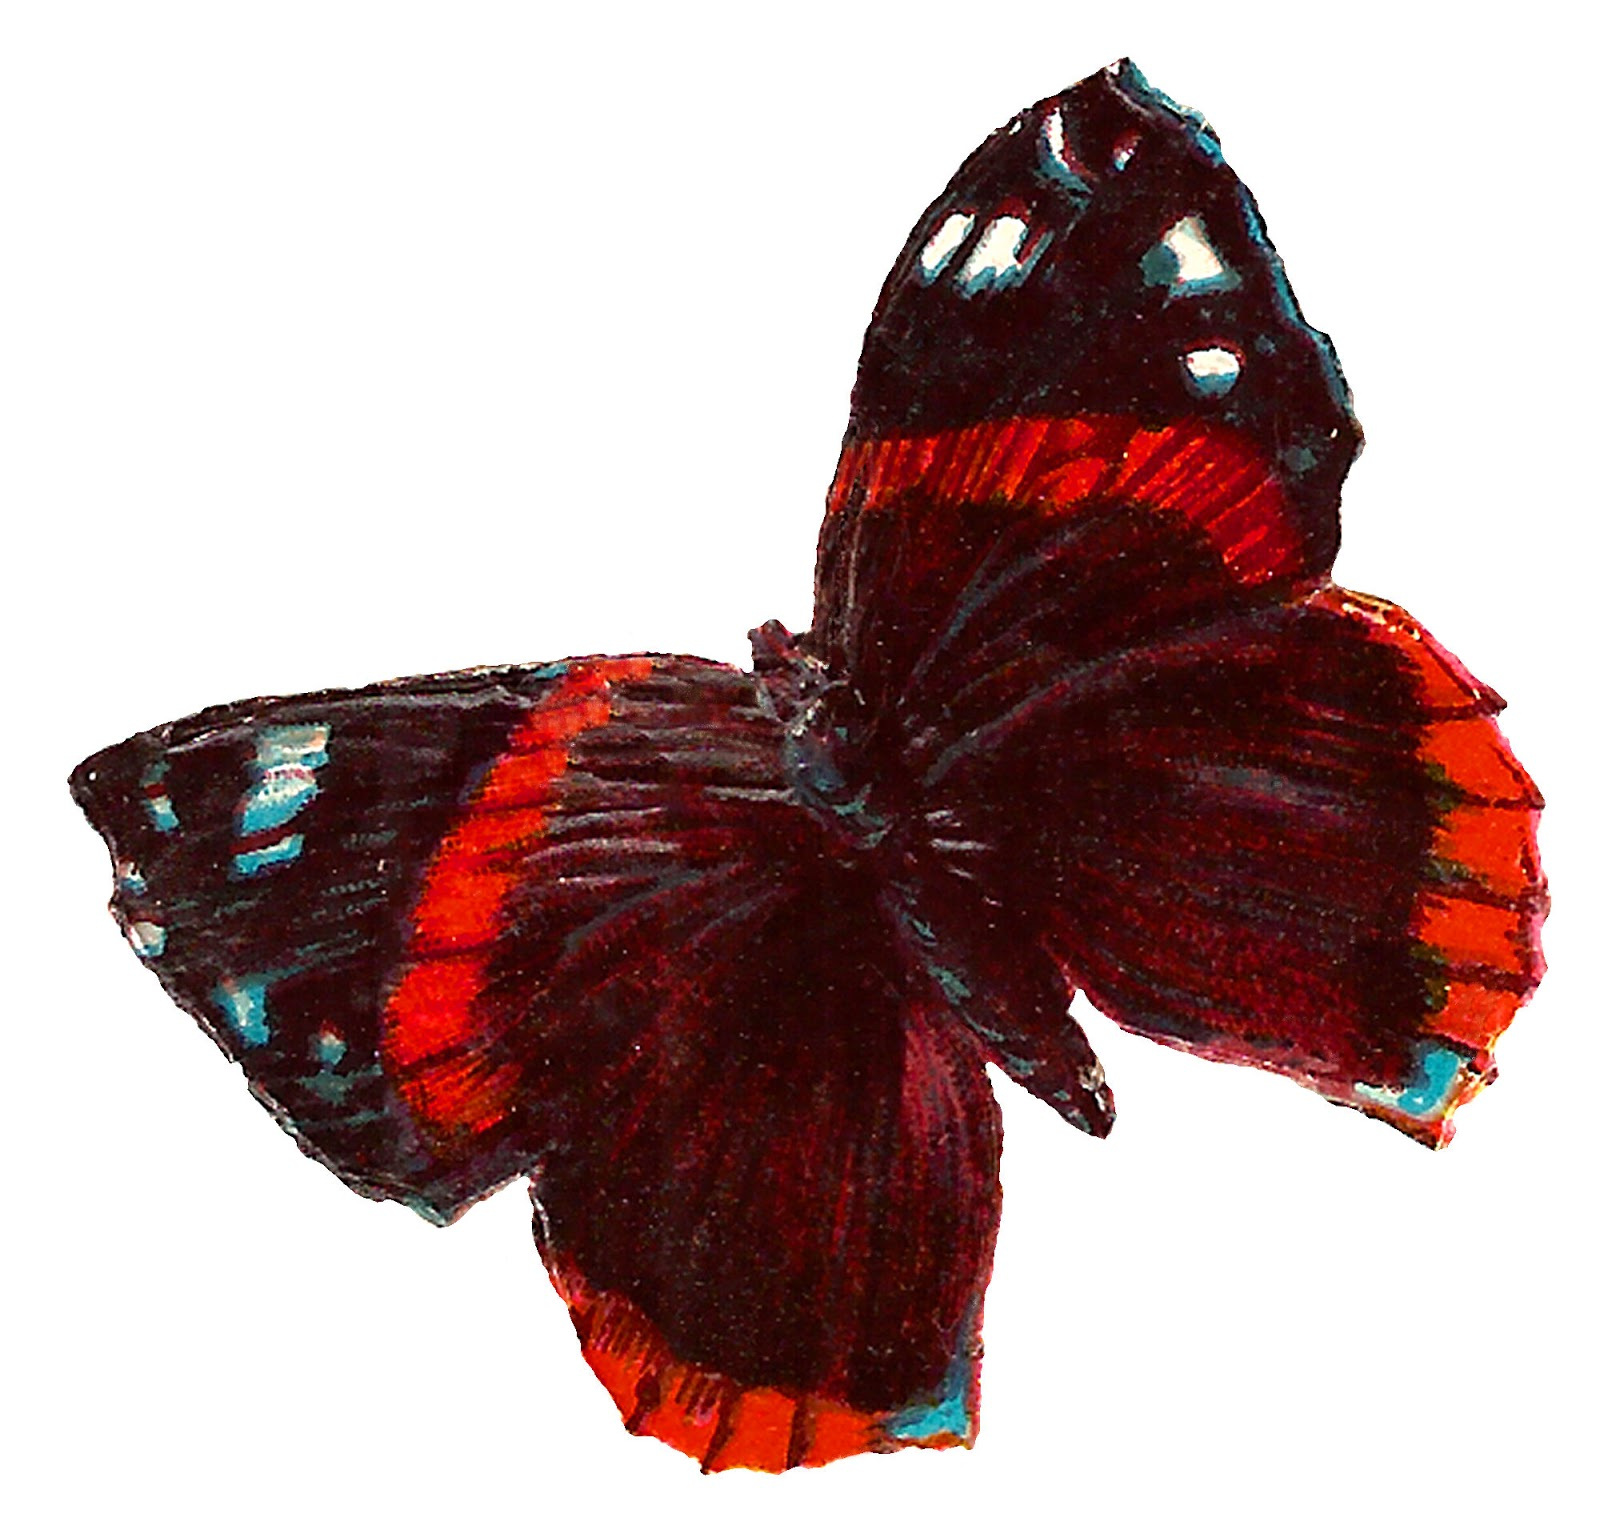 antique images red butterfly free images insect illustration